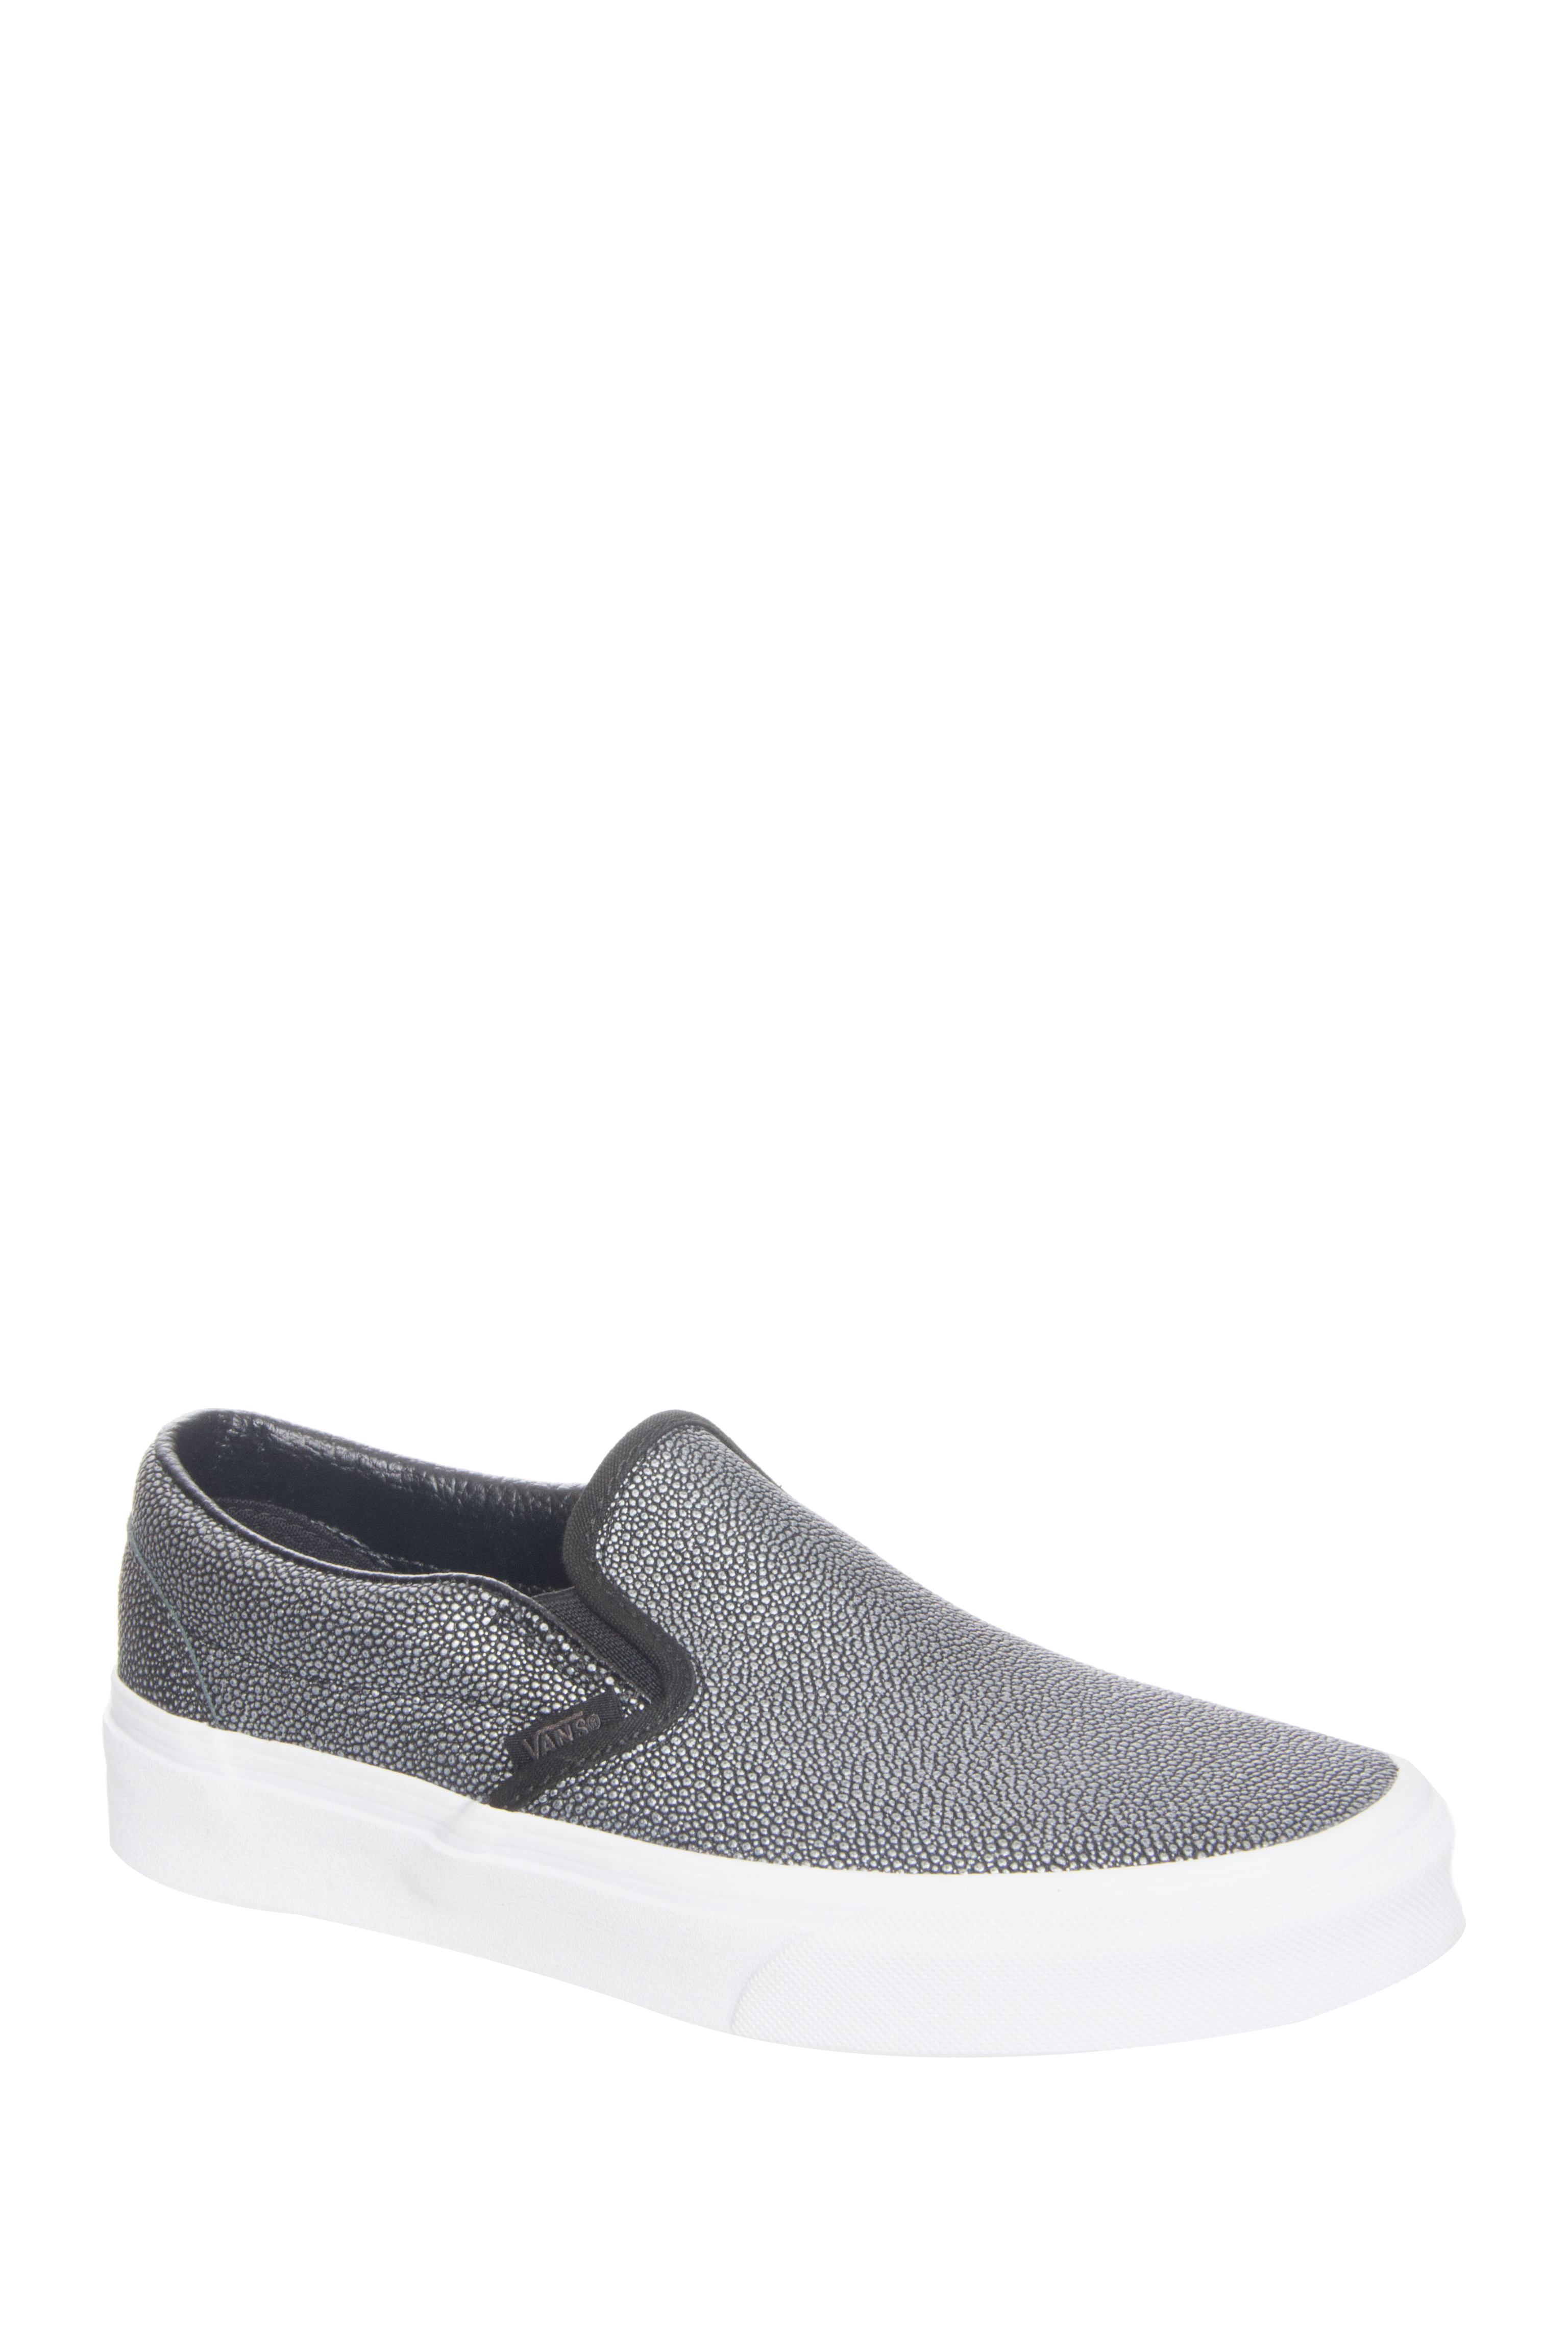 Vans Unisex Stingray Slip-On Sneakers -Black